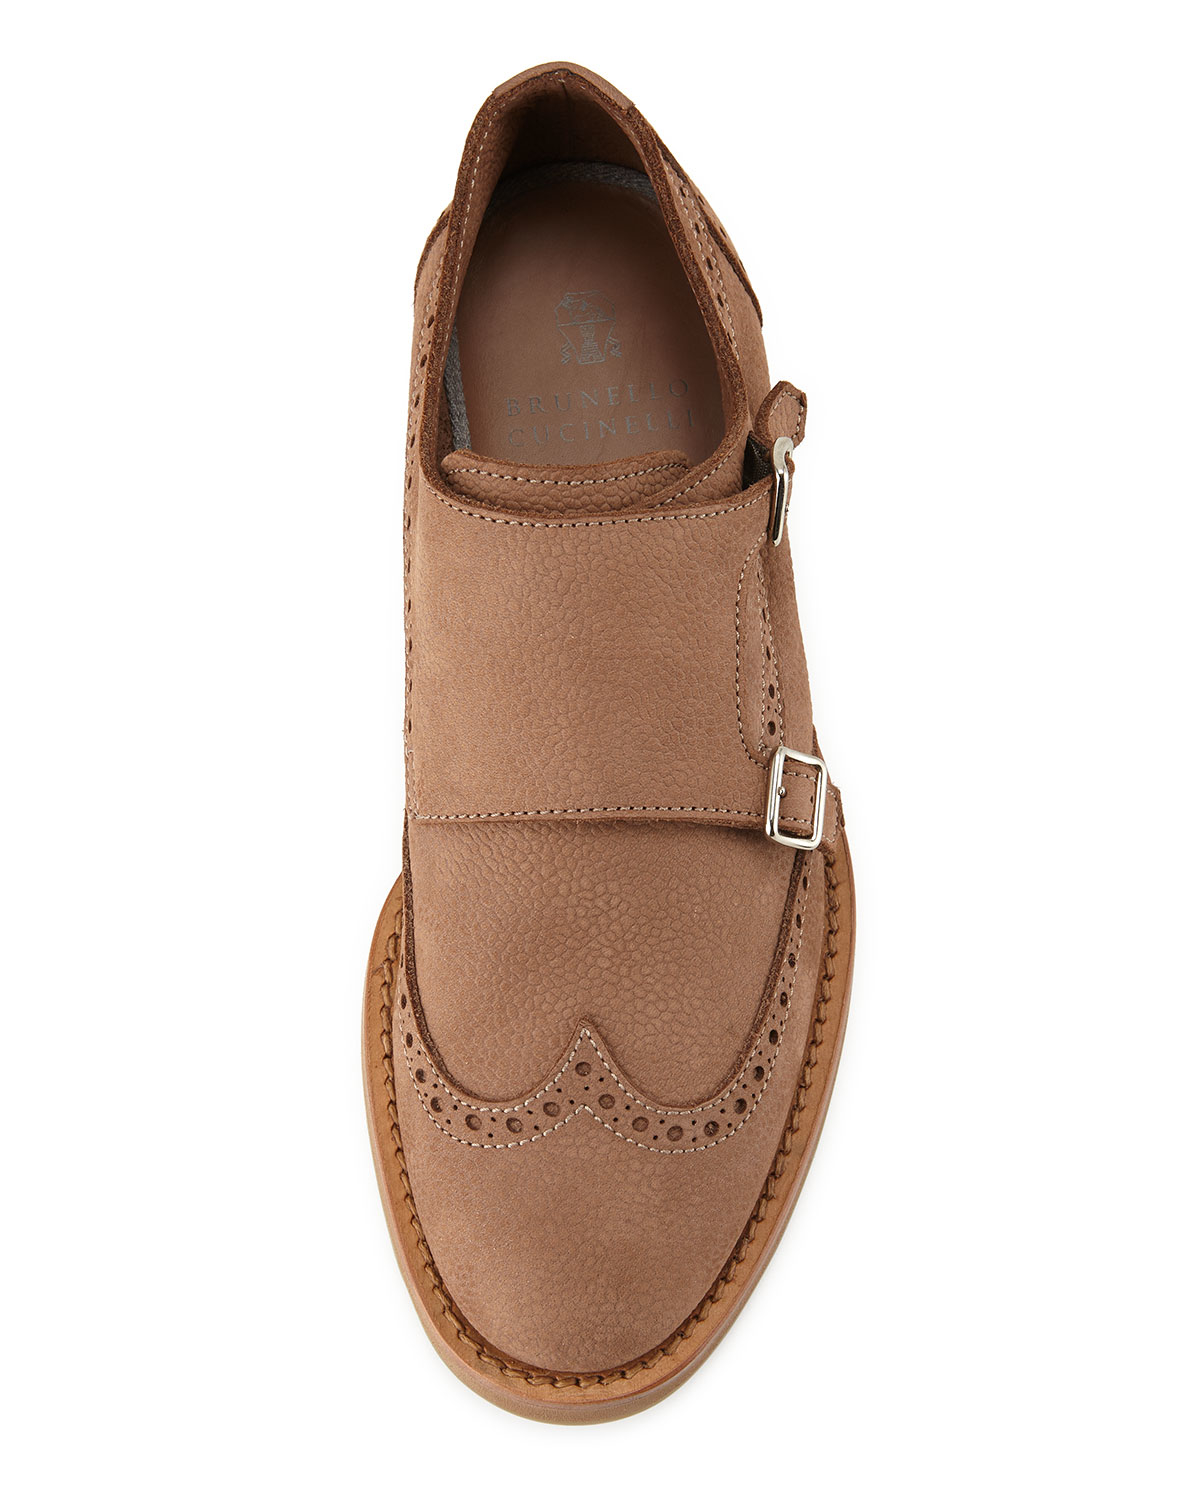 Brogue Monk Shoes Womens